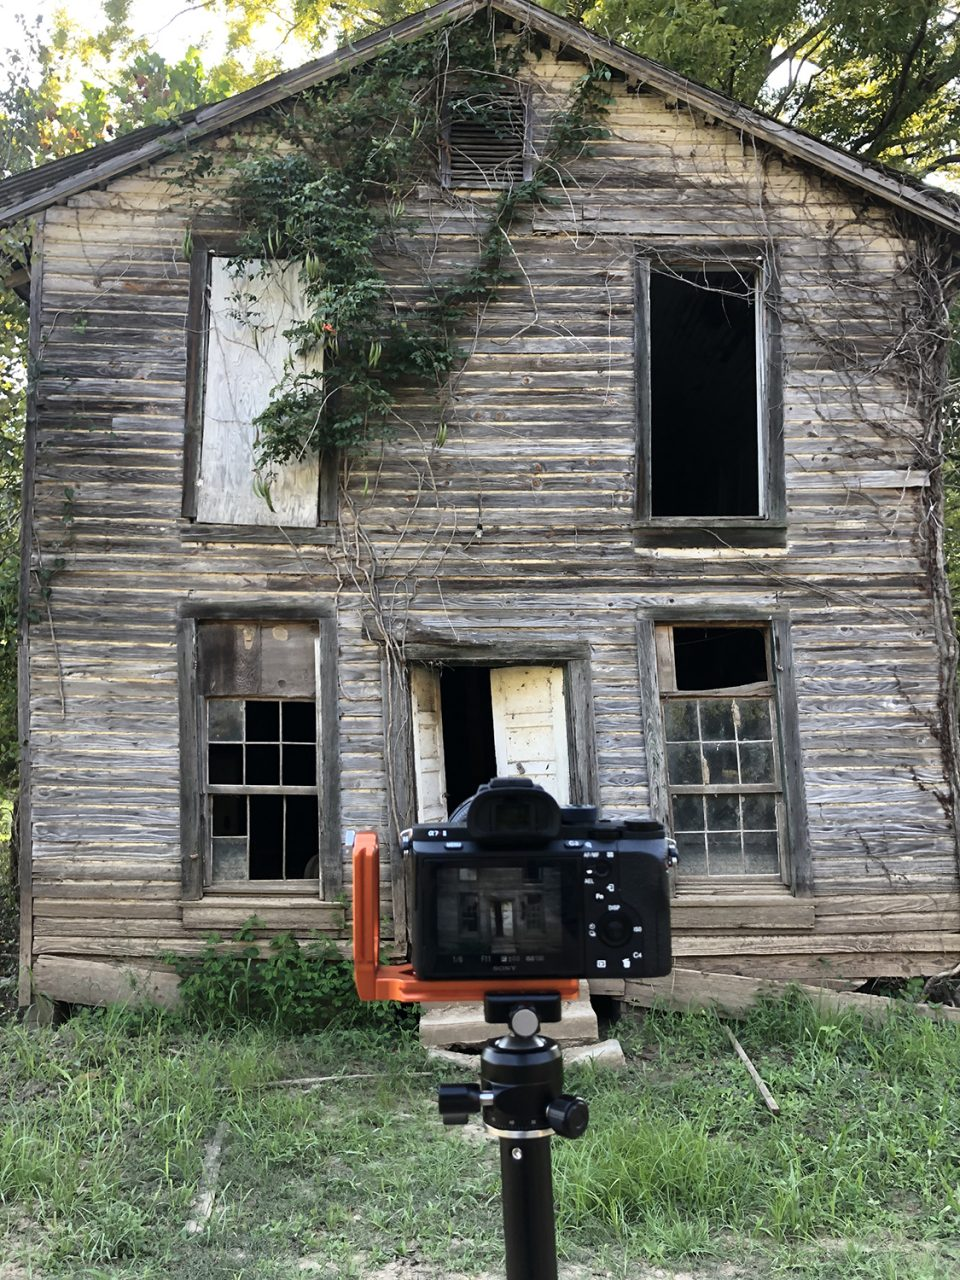 This photograph was taken on the site of the ghost town, a surprise location I didn't know existed until a few days ago.